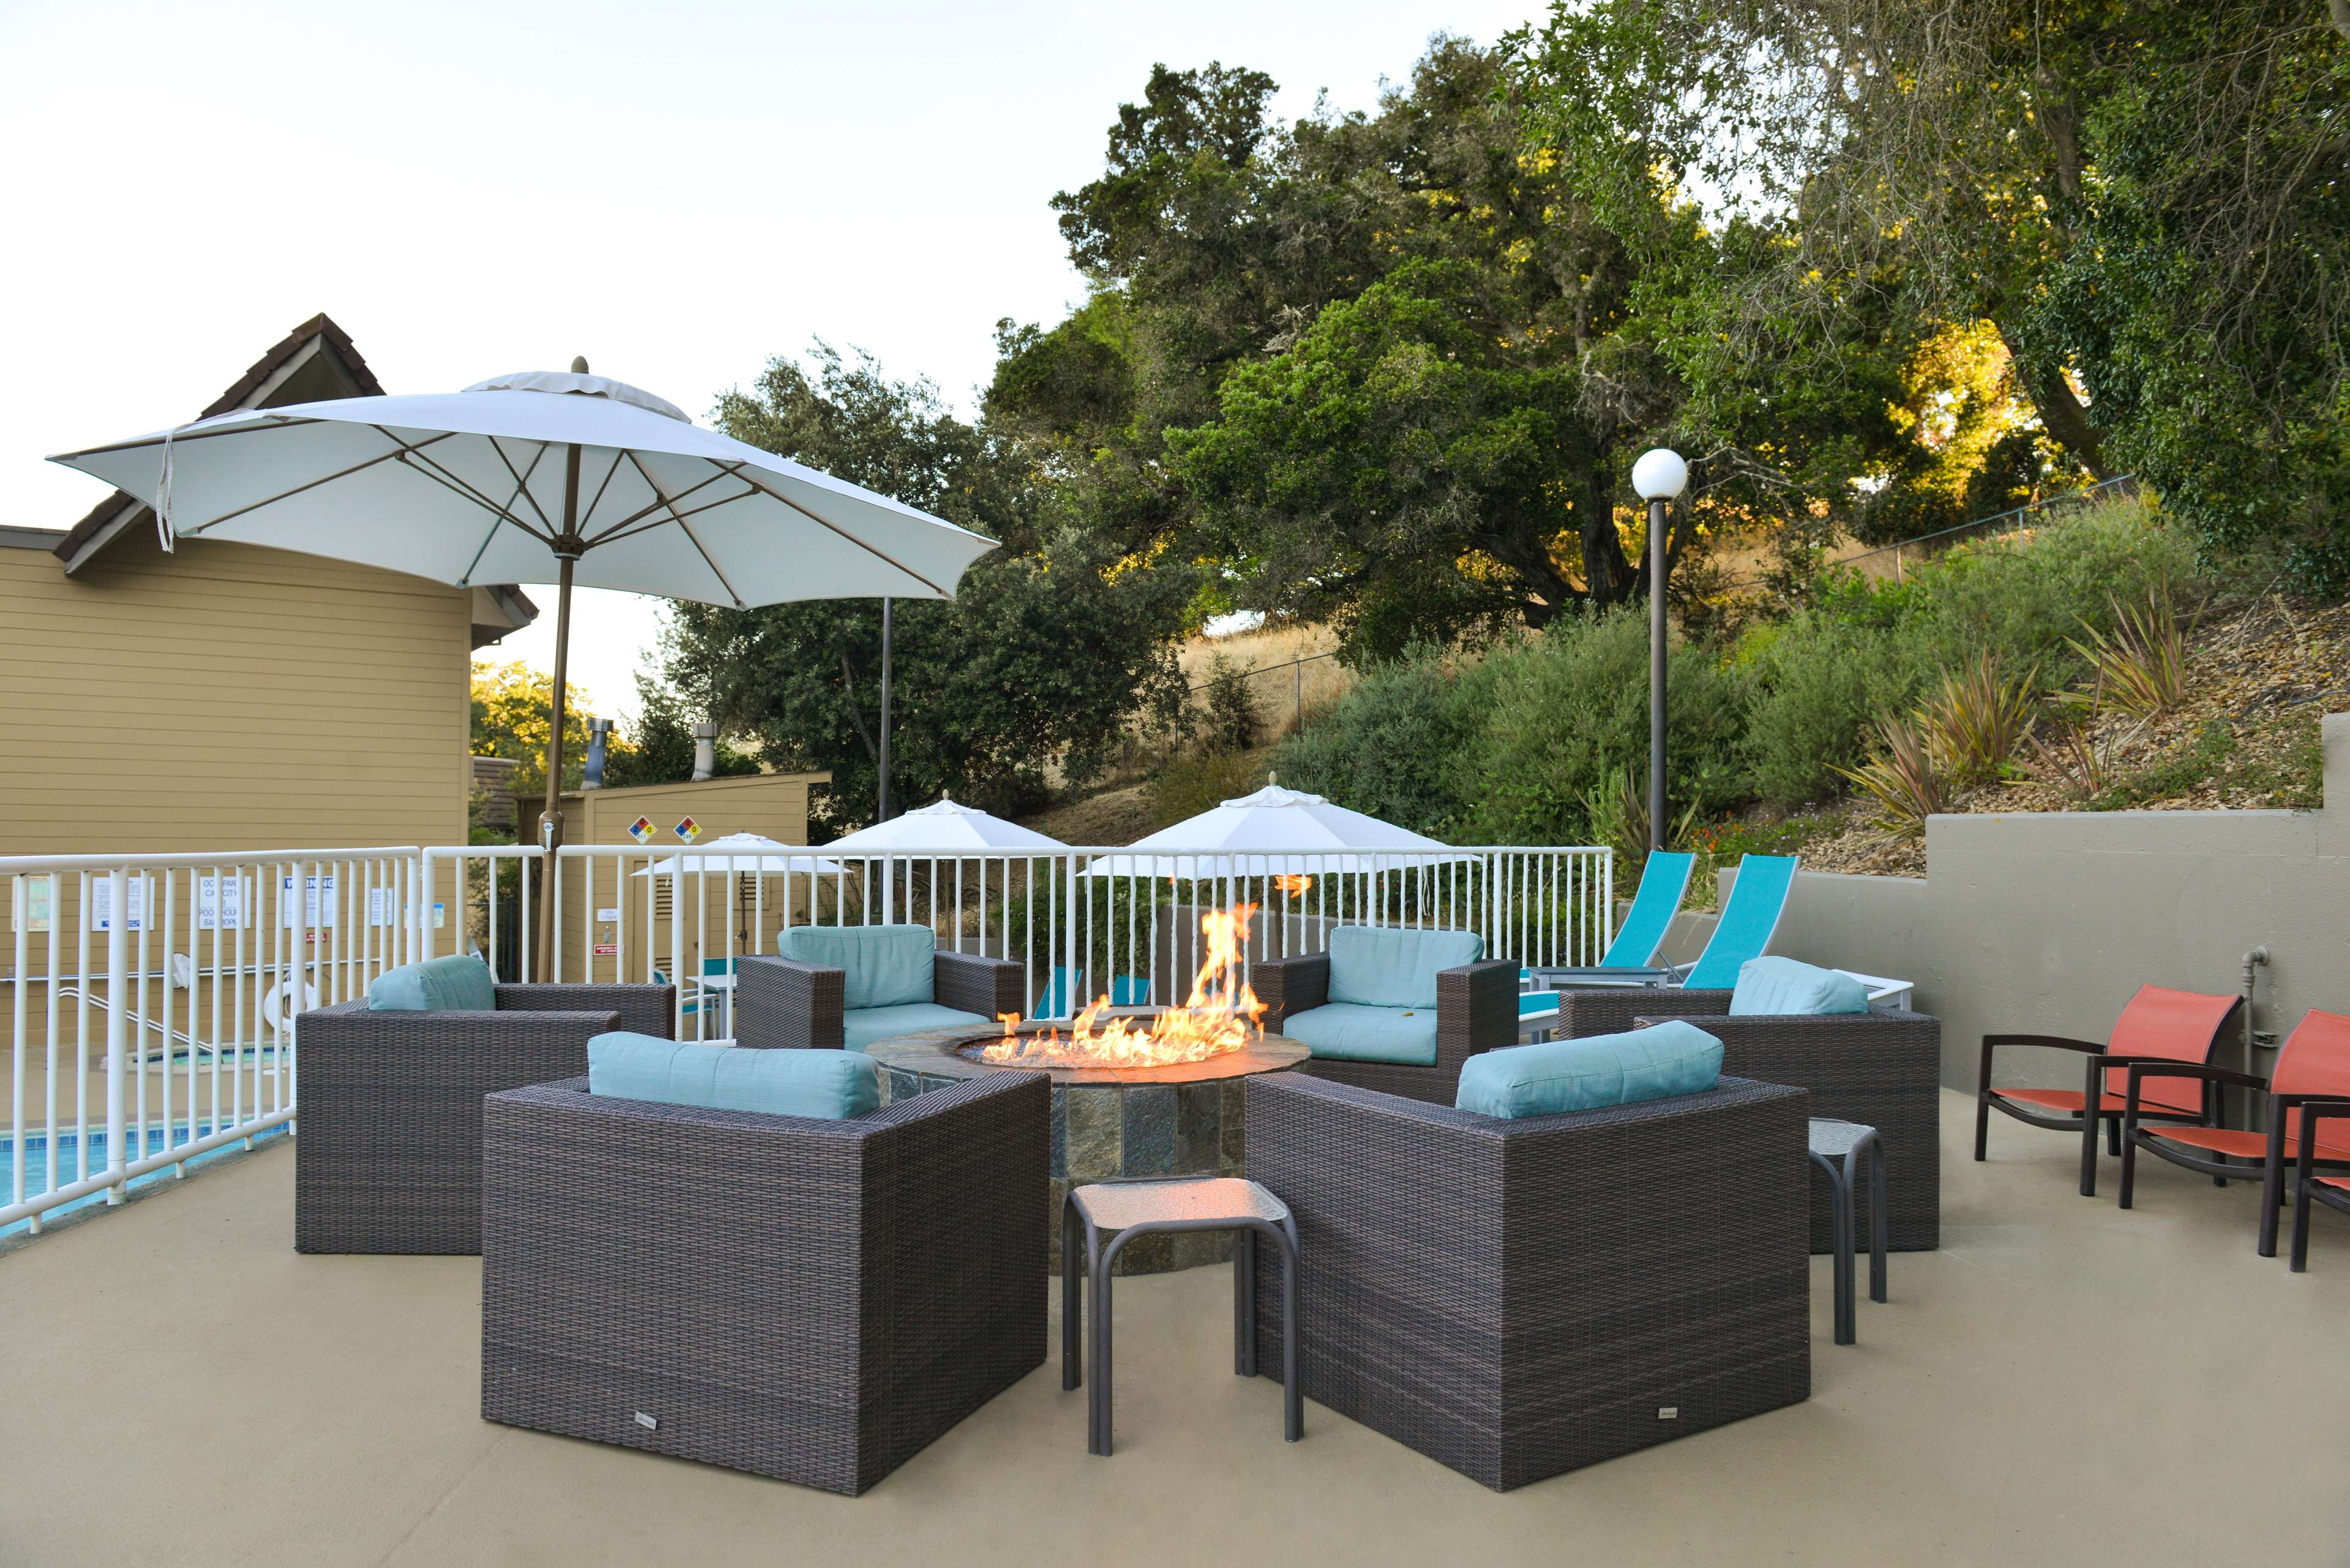 Hotels And Motels In Novato Ca